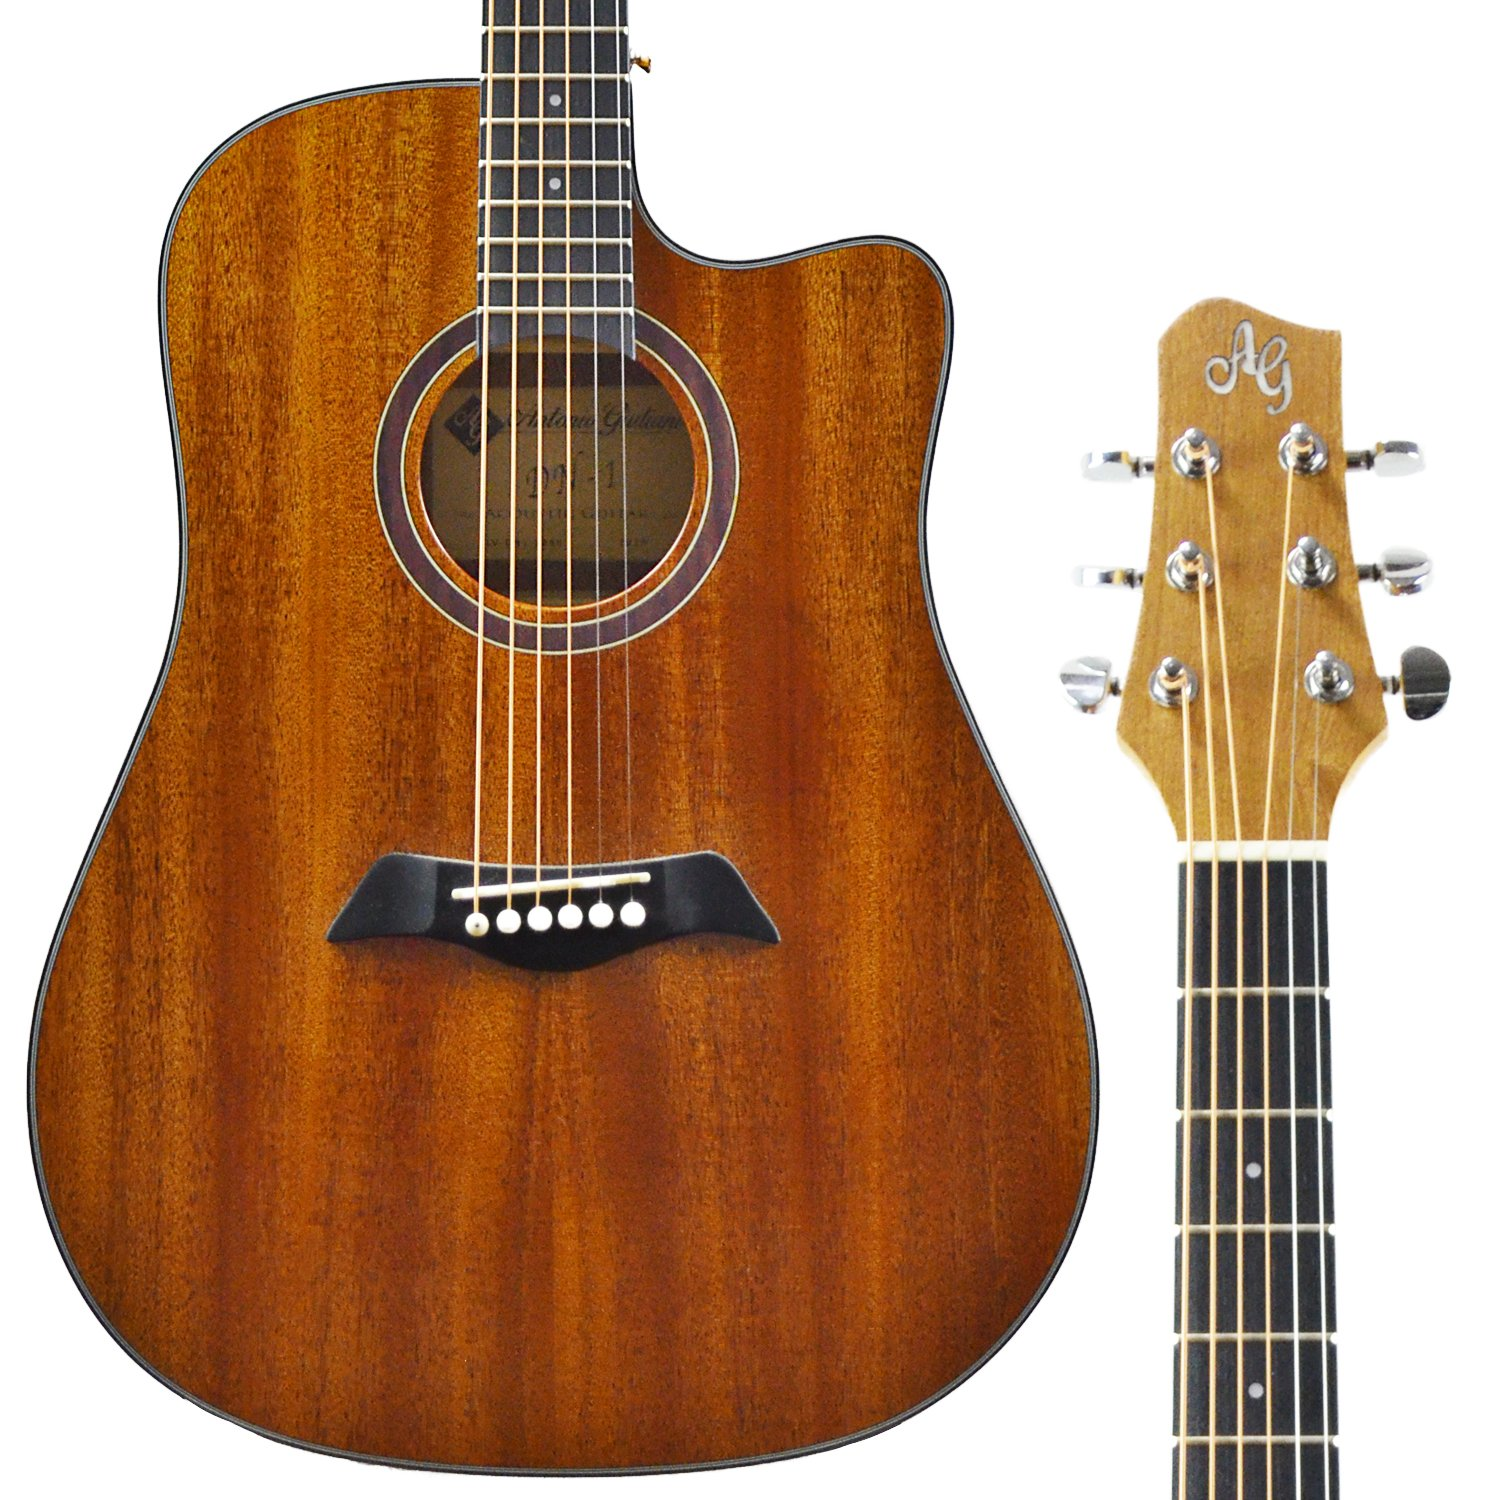 CLEARANCE Antonio Giuliani DN-1 Dreadnought Cutaway Acoustic Guitar in action